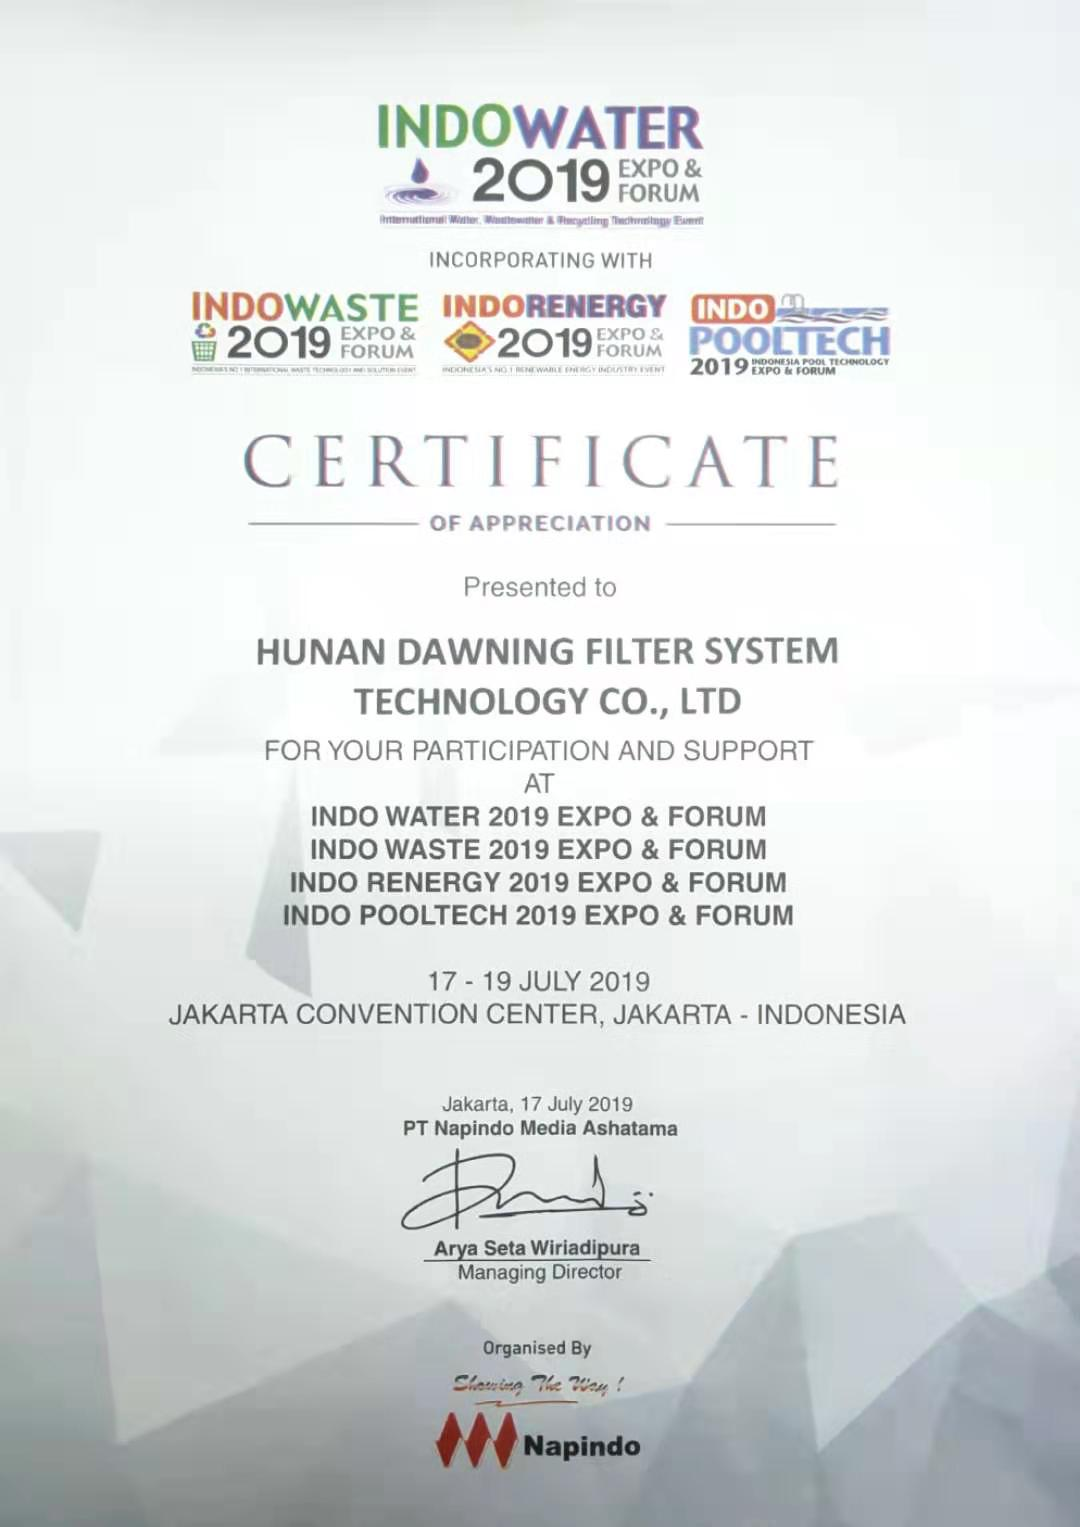 Indowater certificate